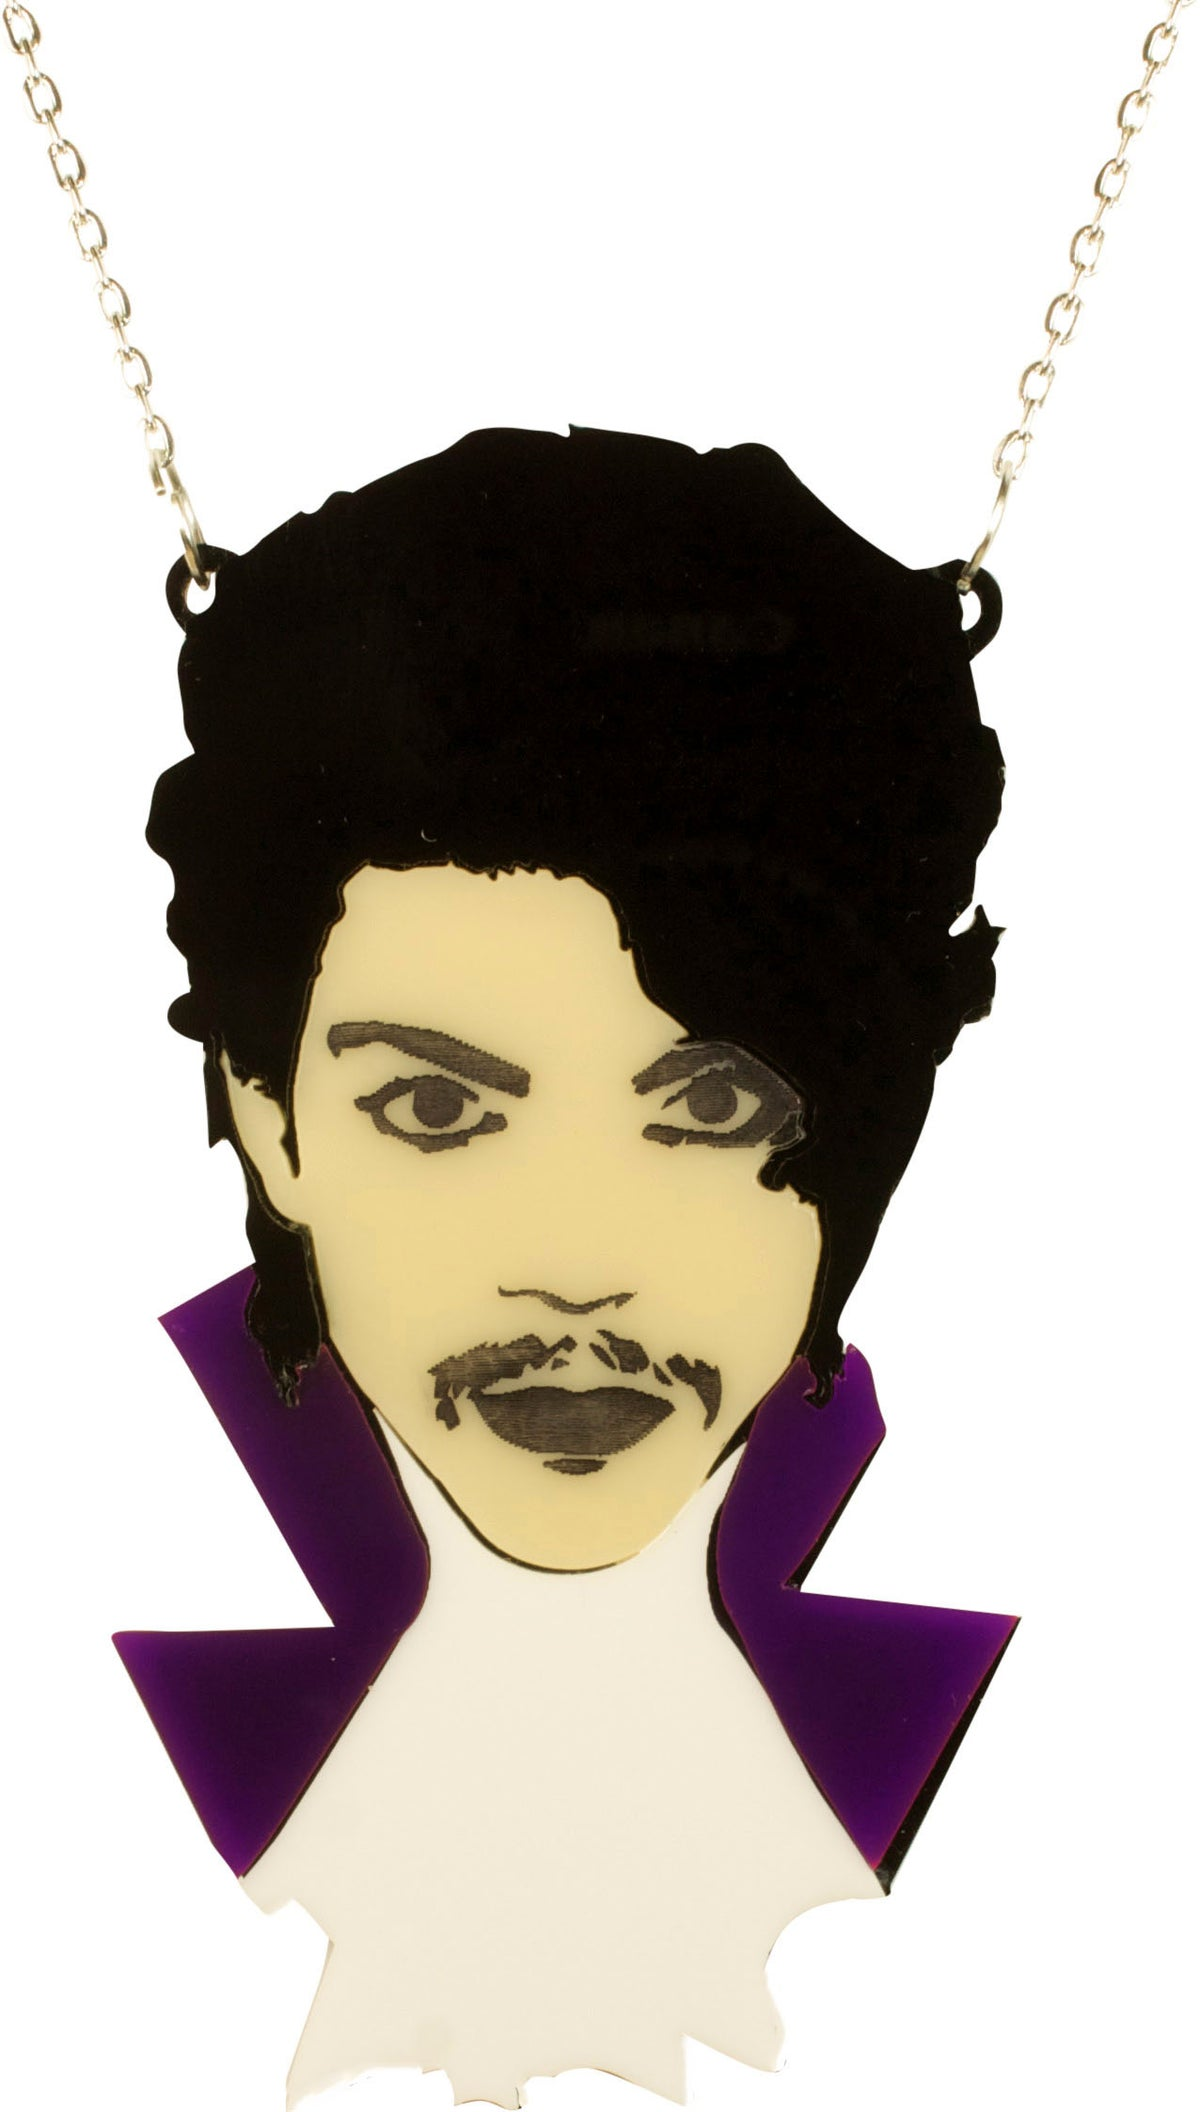 Image of Prince Purple Rain Necklace